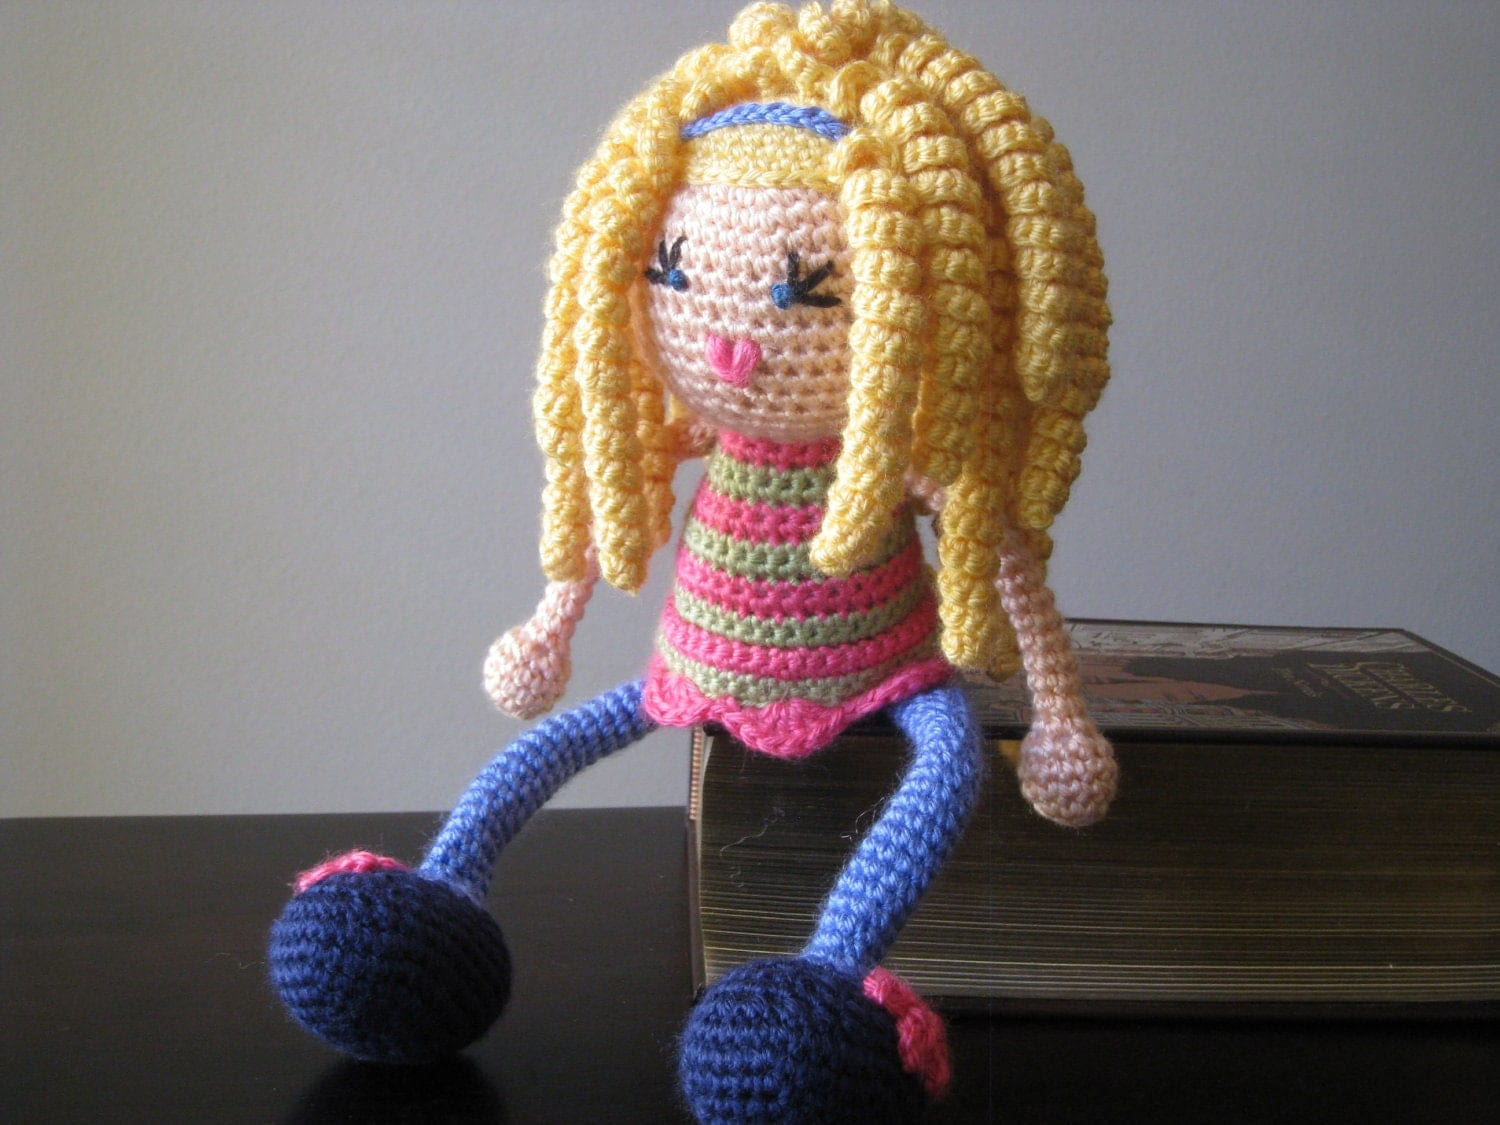 CROCHET PATTERN Blond Curly Haired Doll Plush by LeenGreenBean